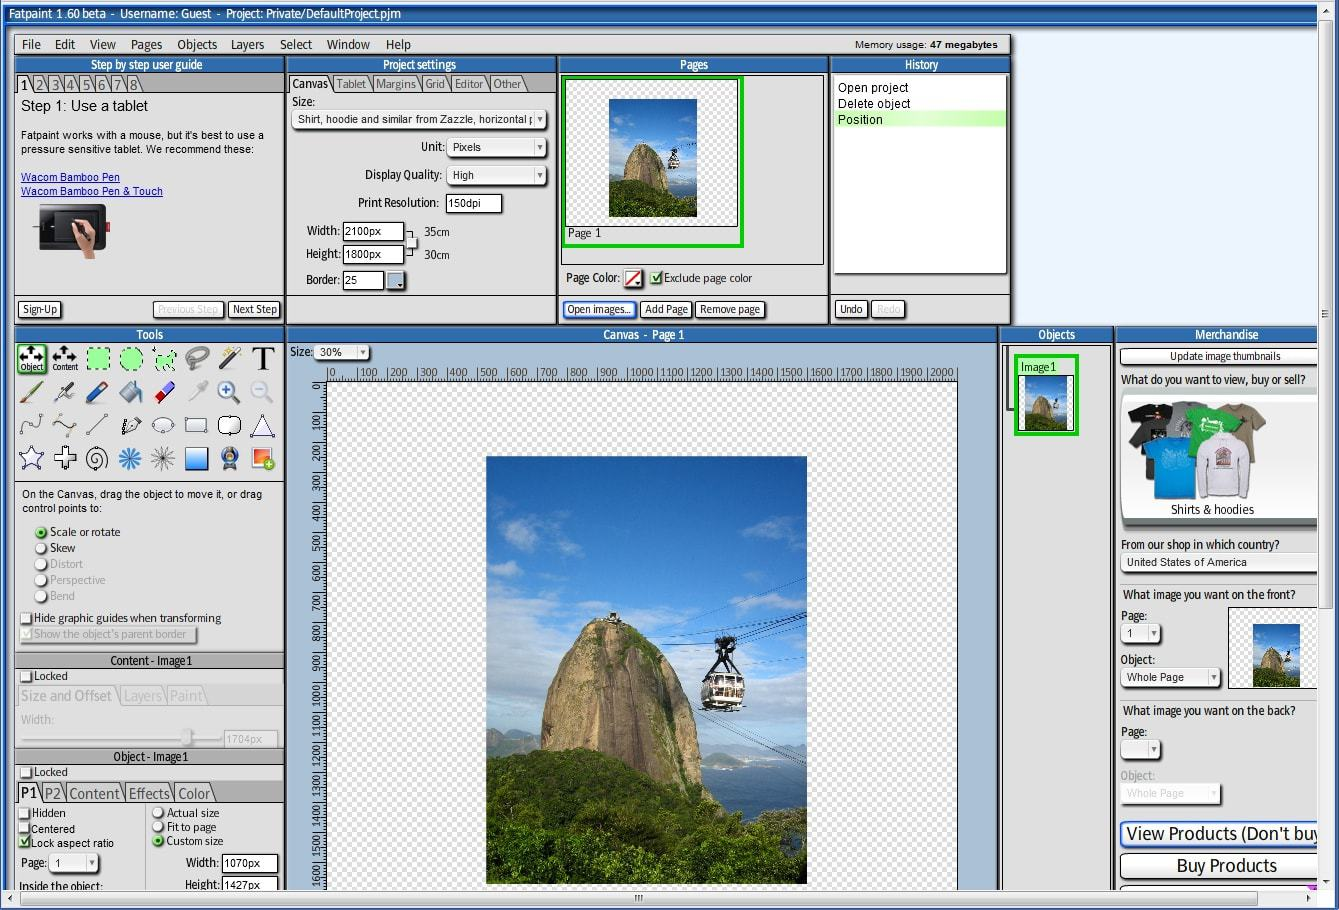 Fatpaint editor